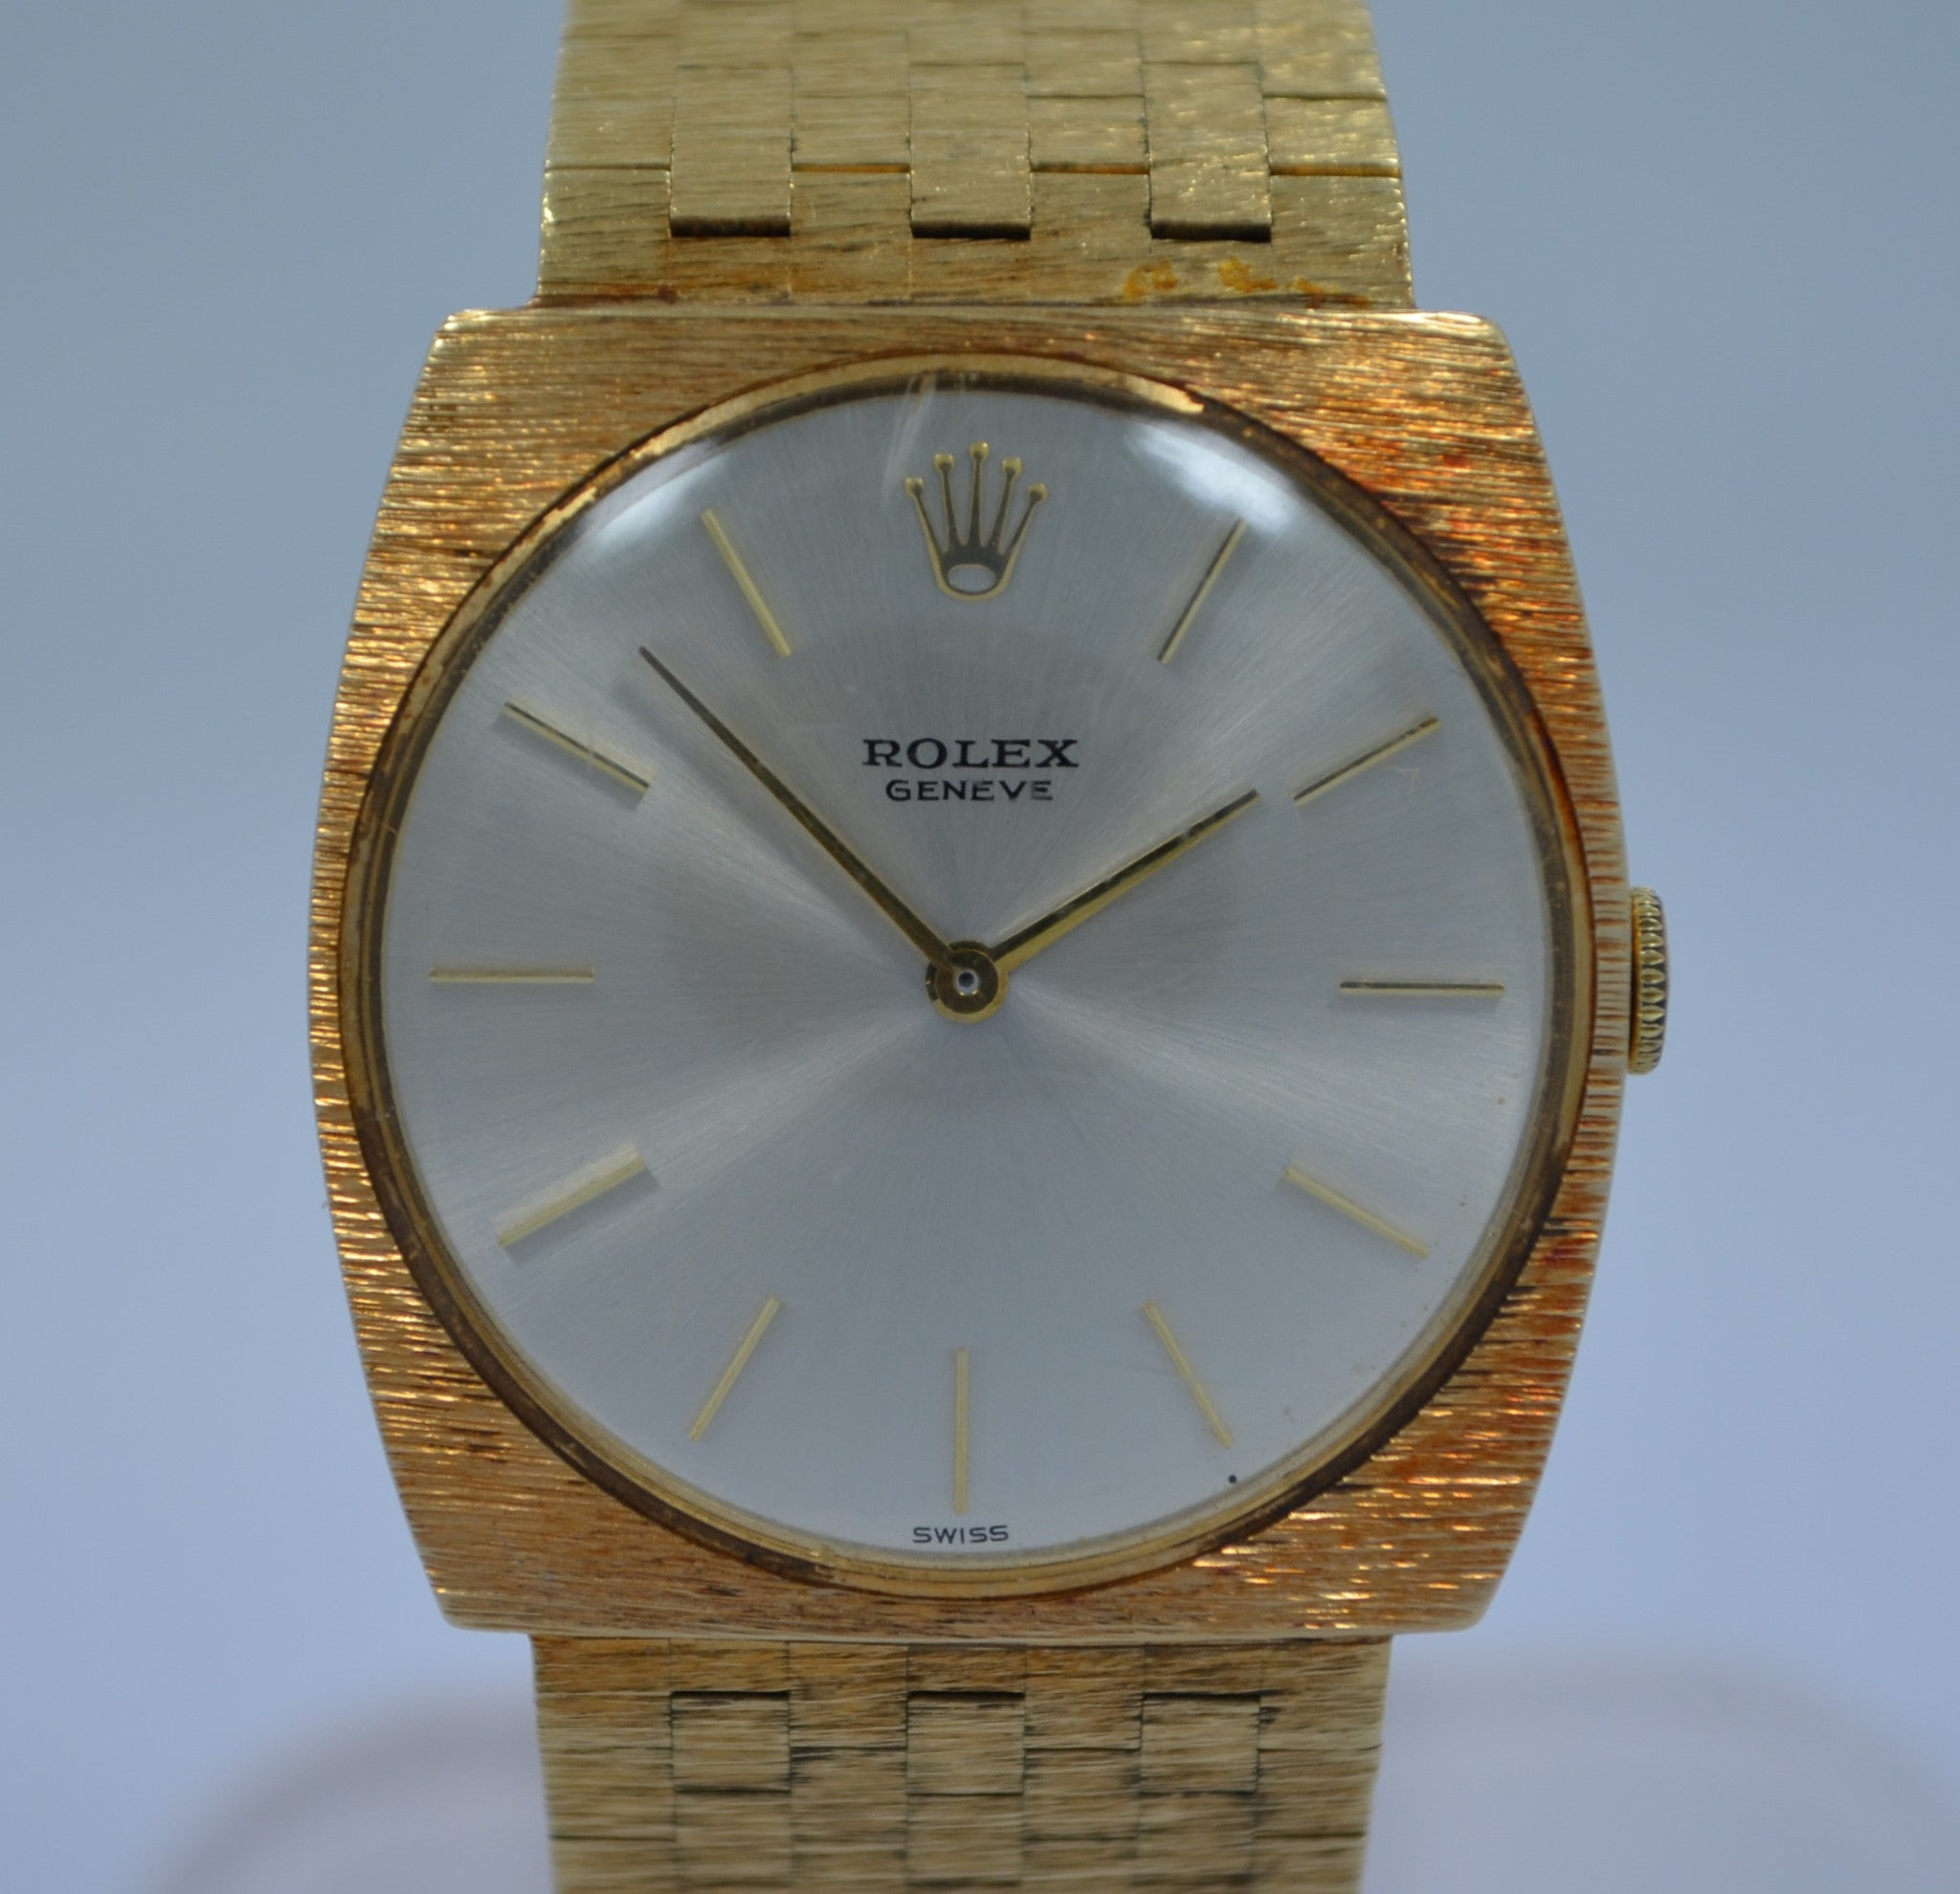 Vintage Rolex 14K Yellow Gold Brick Square Manual Wind 604 Wristwatch 1970's - Hashtag Watch Company